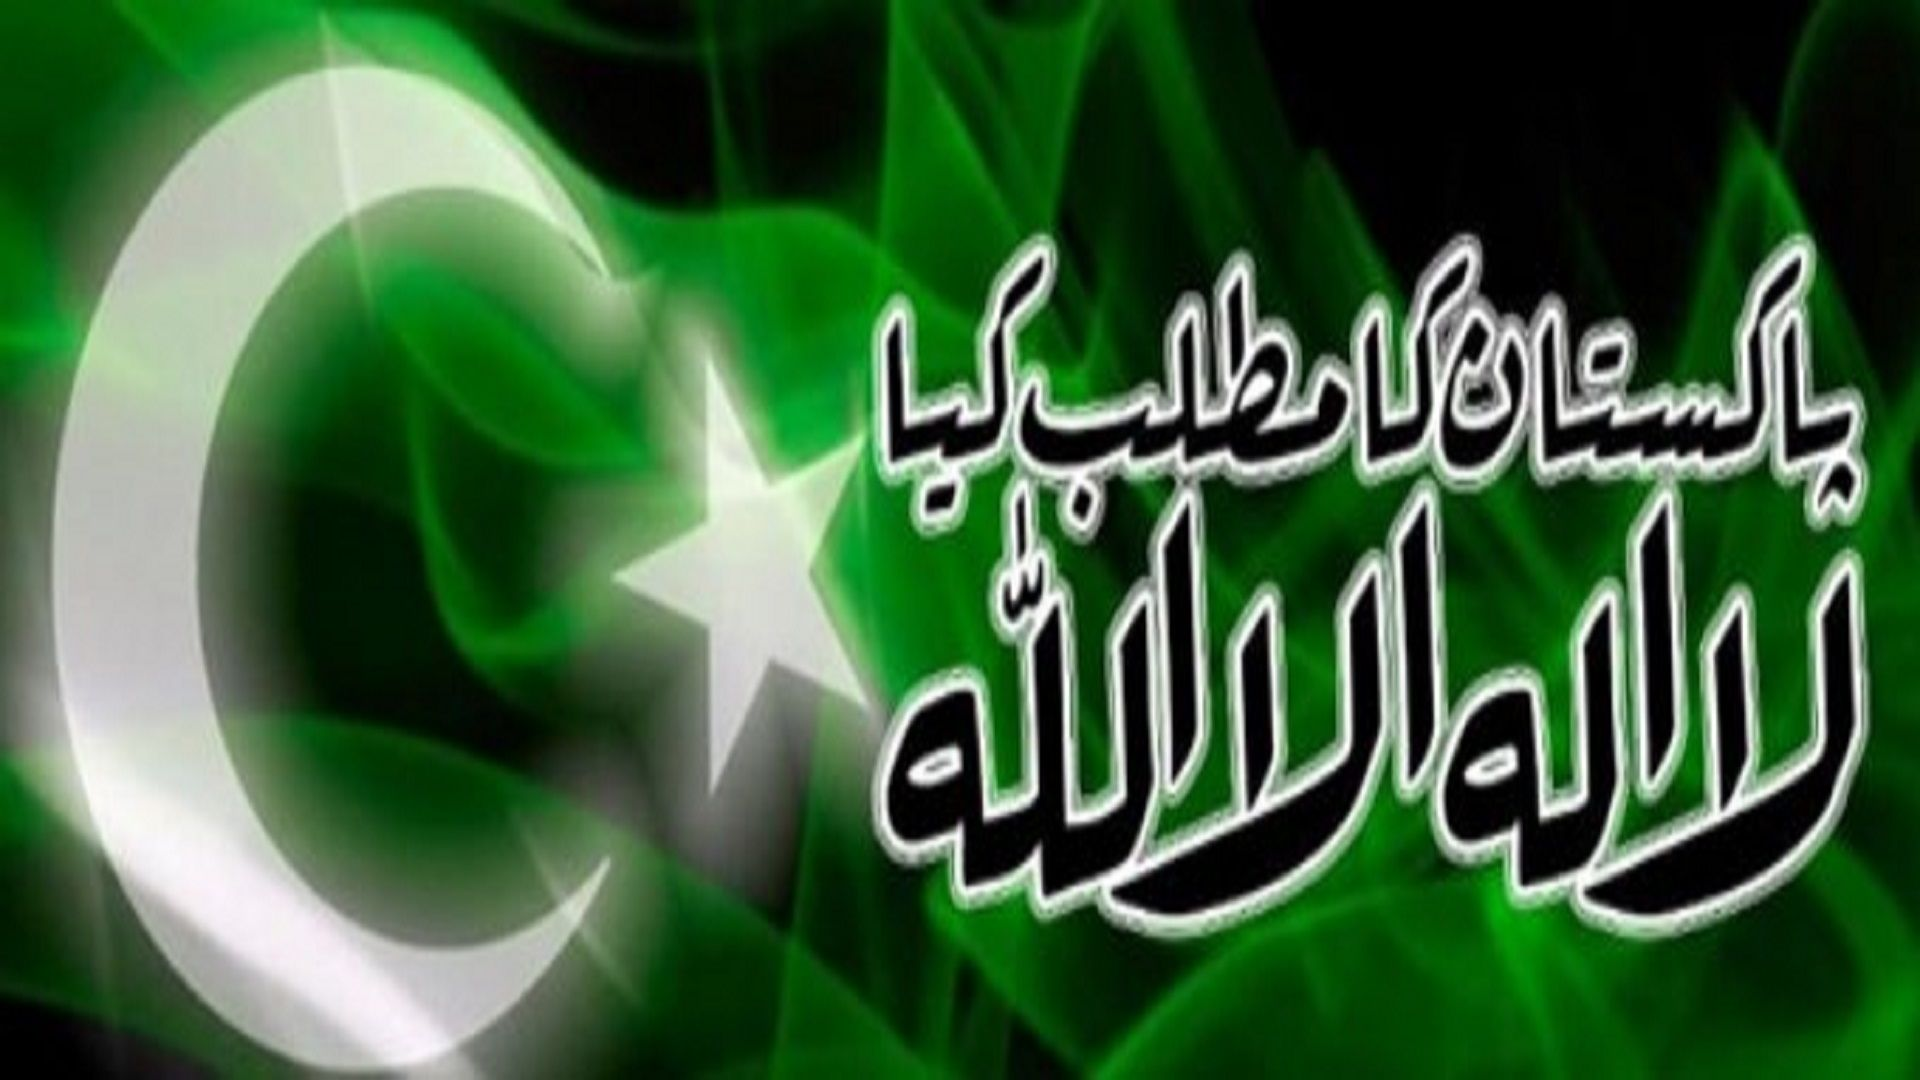 14th August 2016 Hd Wallpapers Free Download In 2020 Pakistan Flag Images 14 August Wallpapers Pakistan Flag